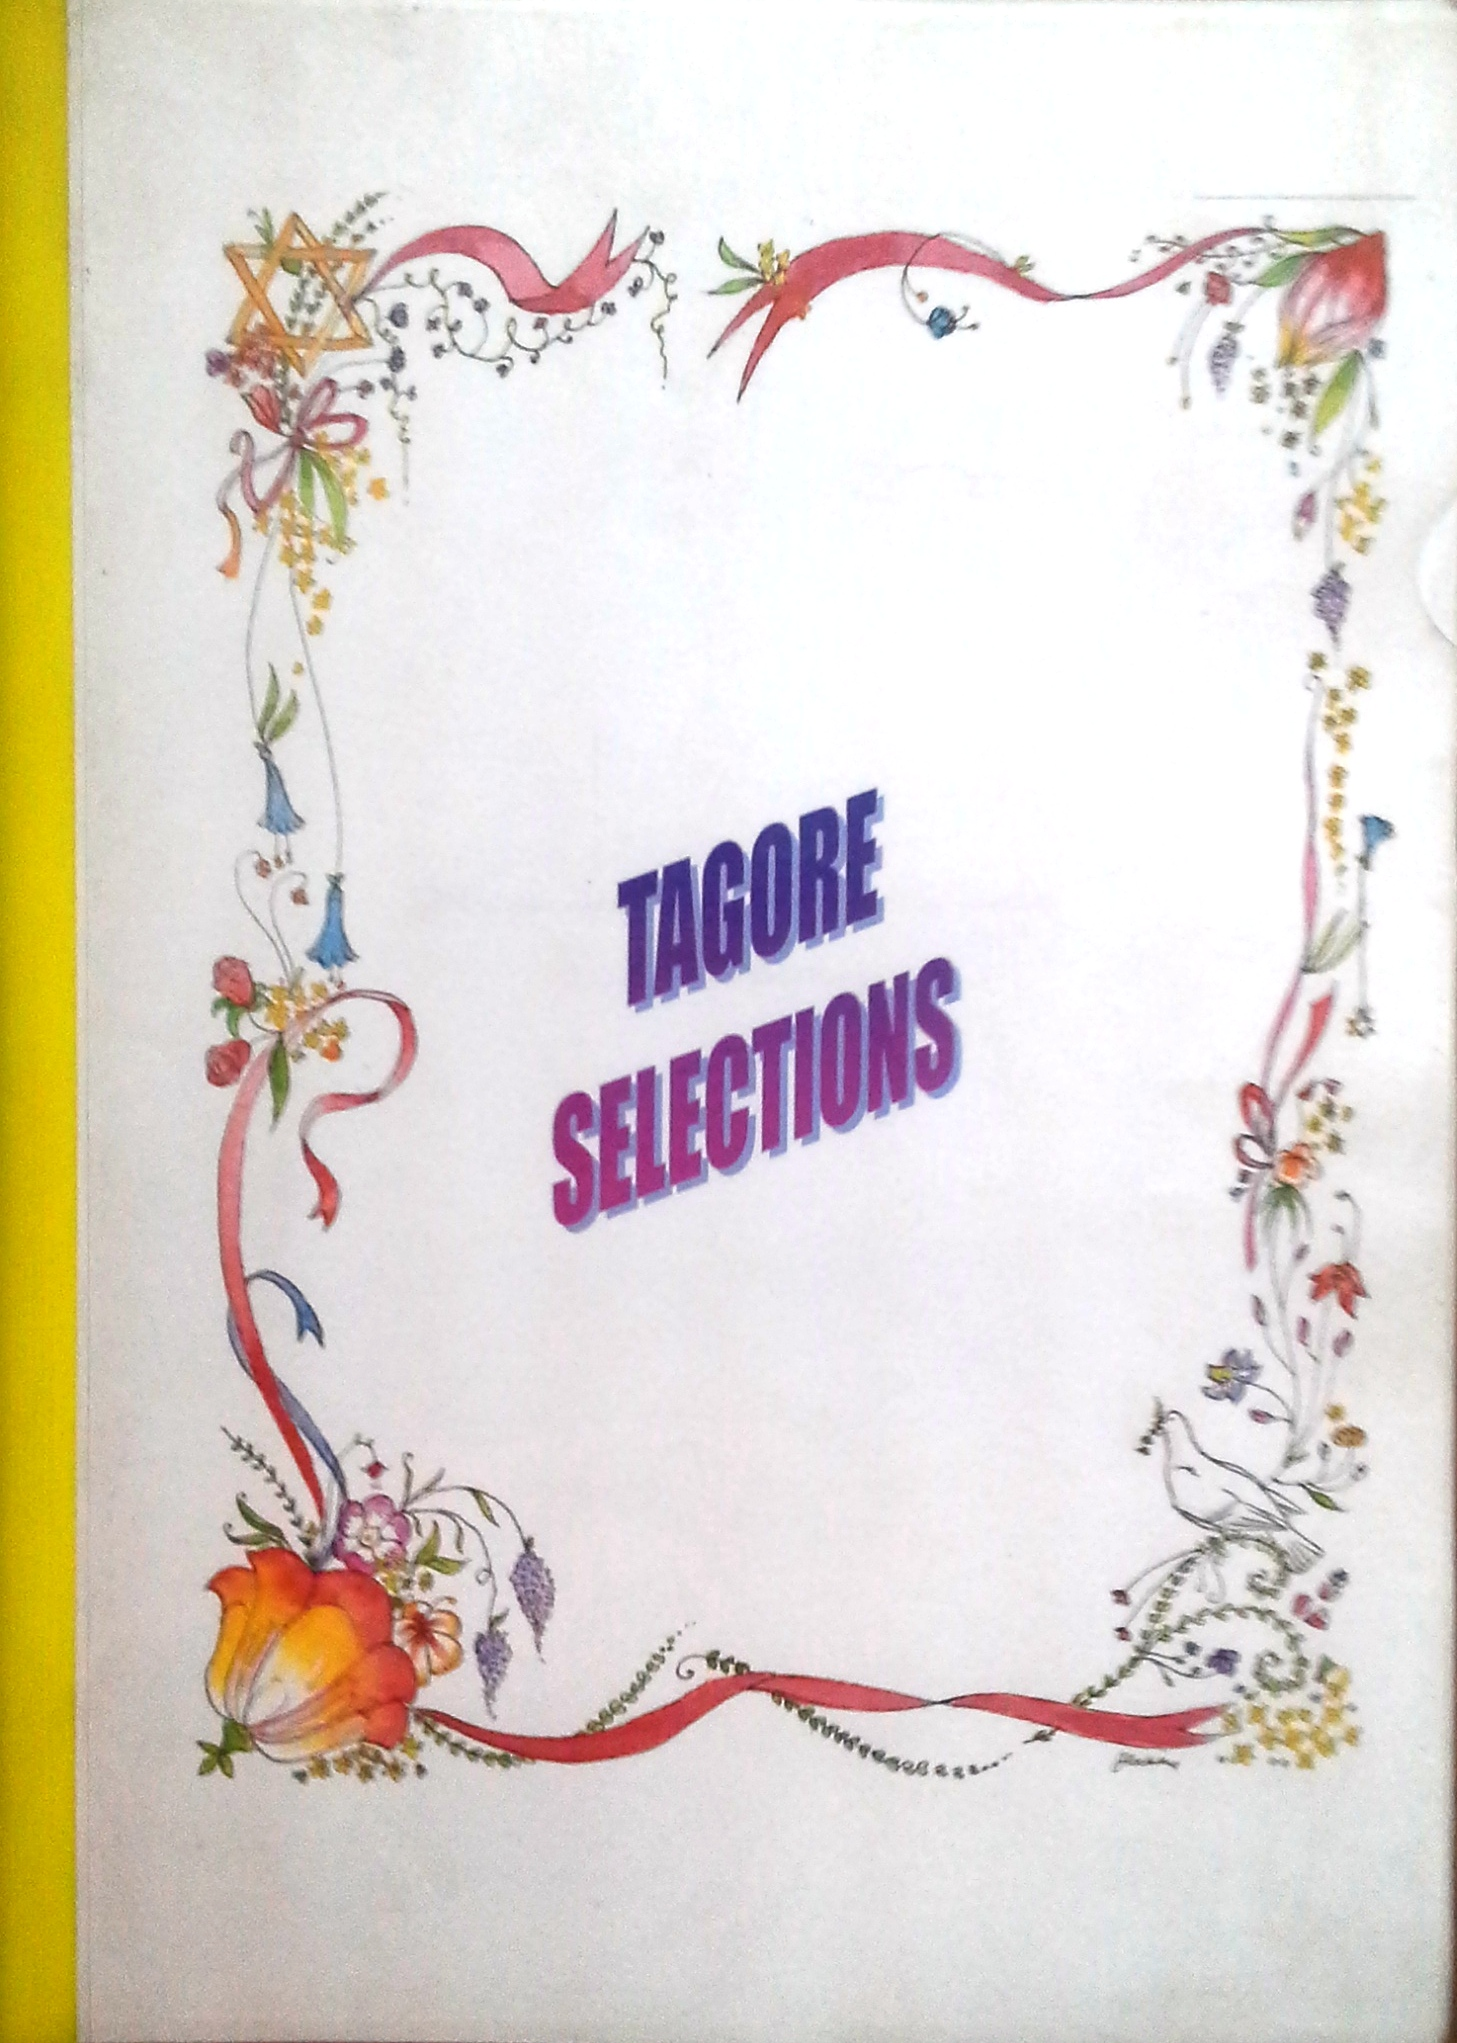 It is the cover page of compilations from Tagore